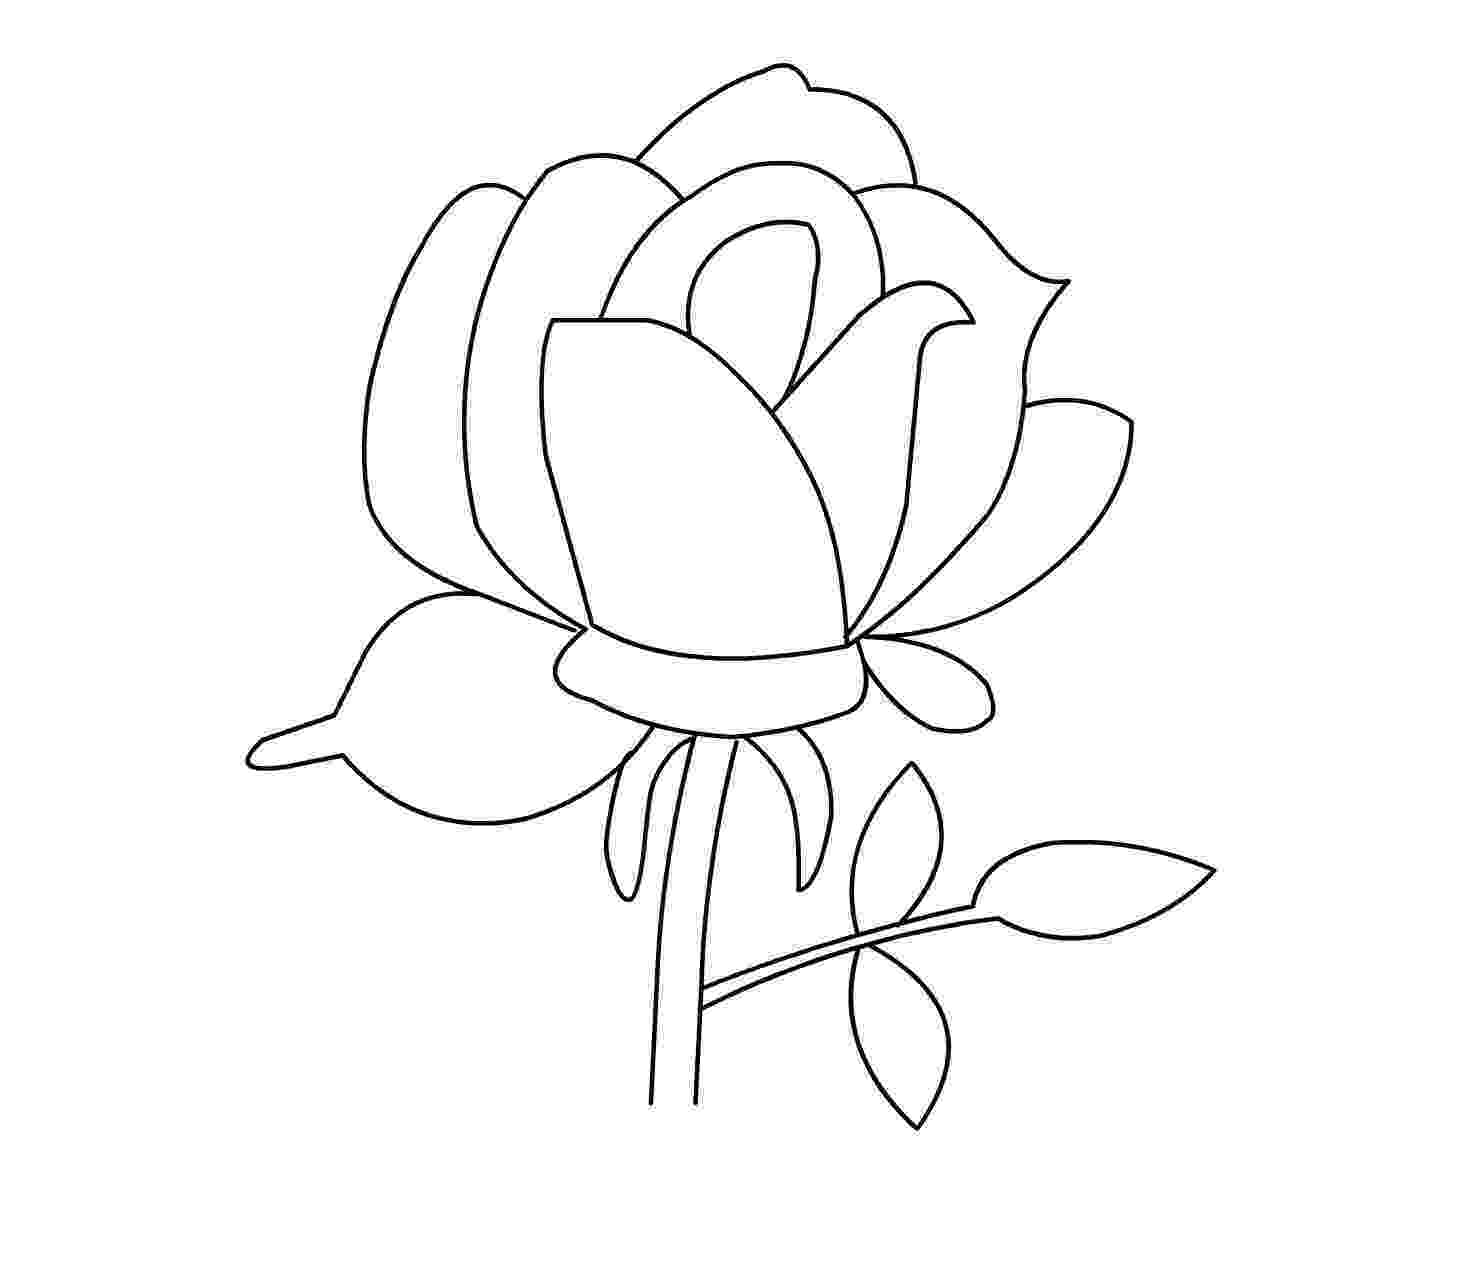 printable roses printable rose coloring pages for everyone rose coloring printable roses